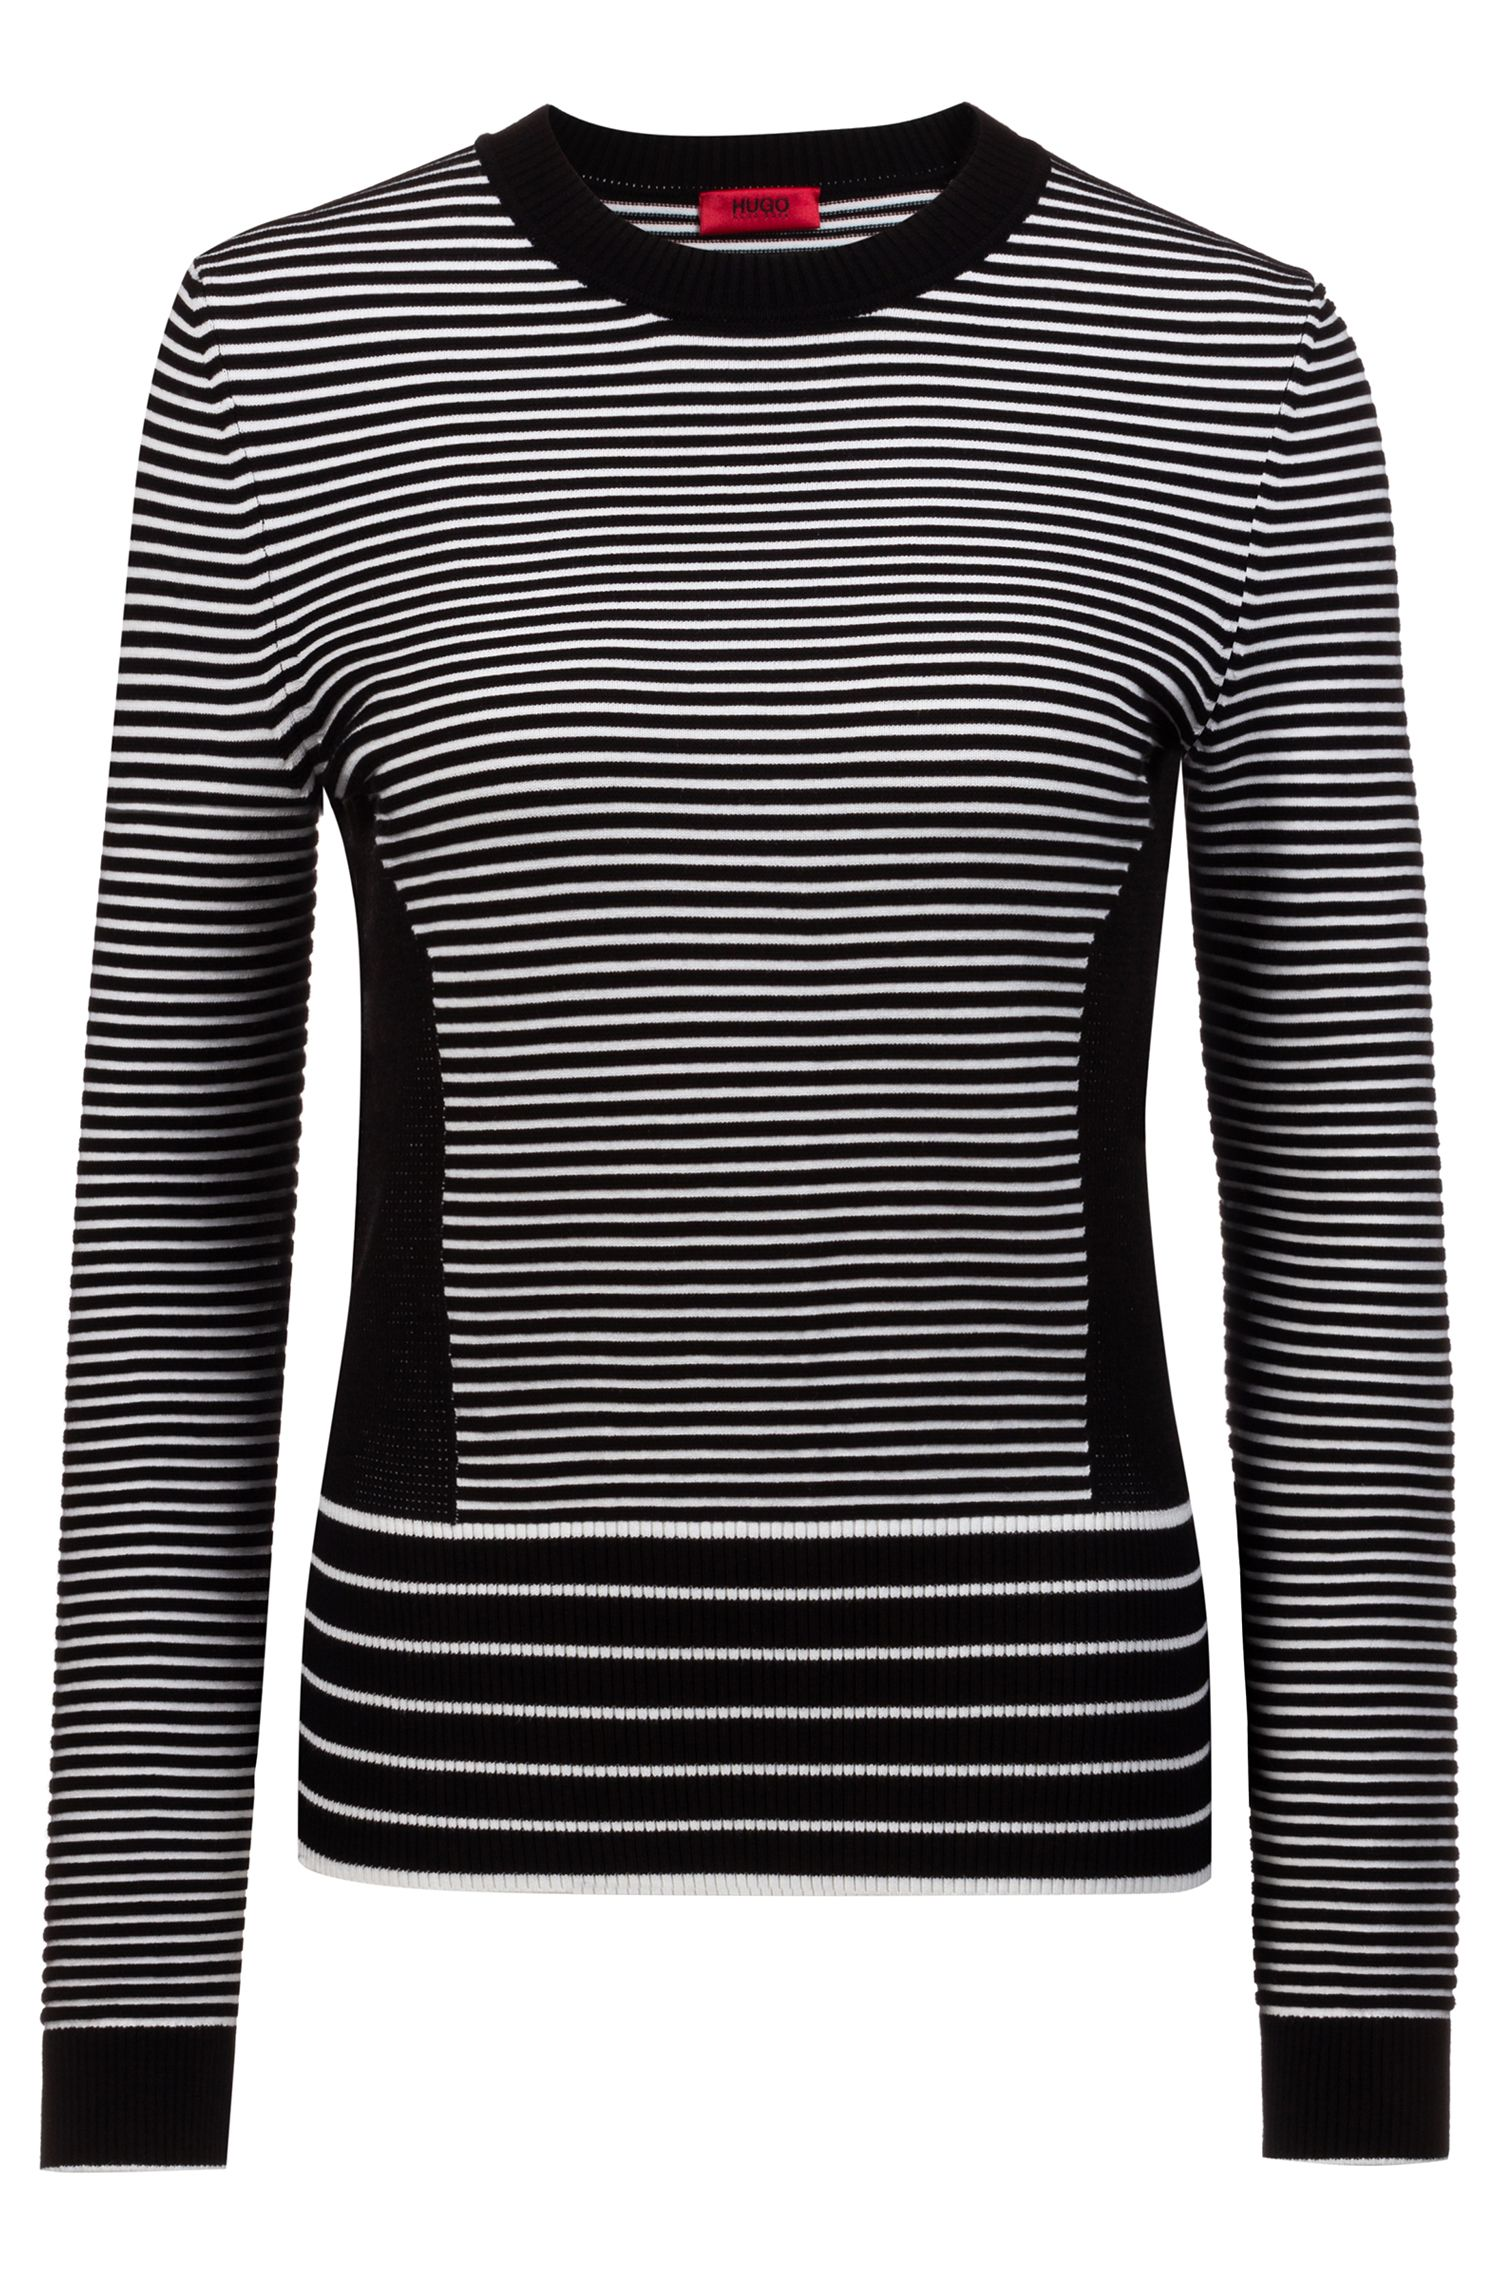 Knitted sweater with mixed stripes, Patterned